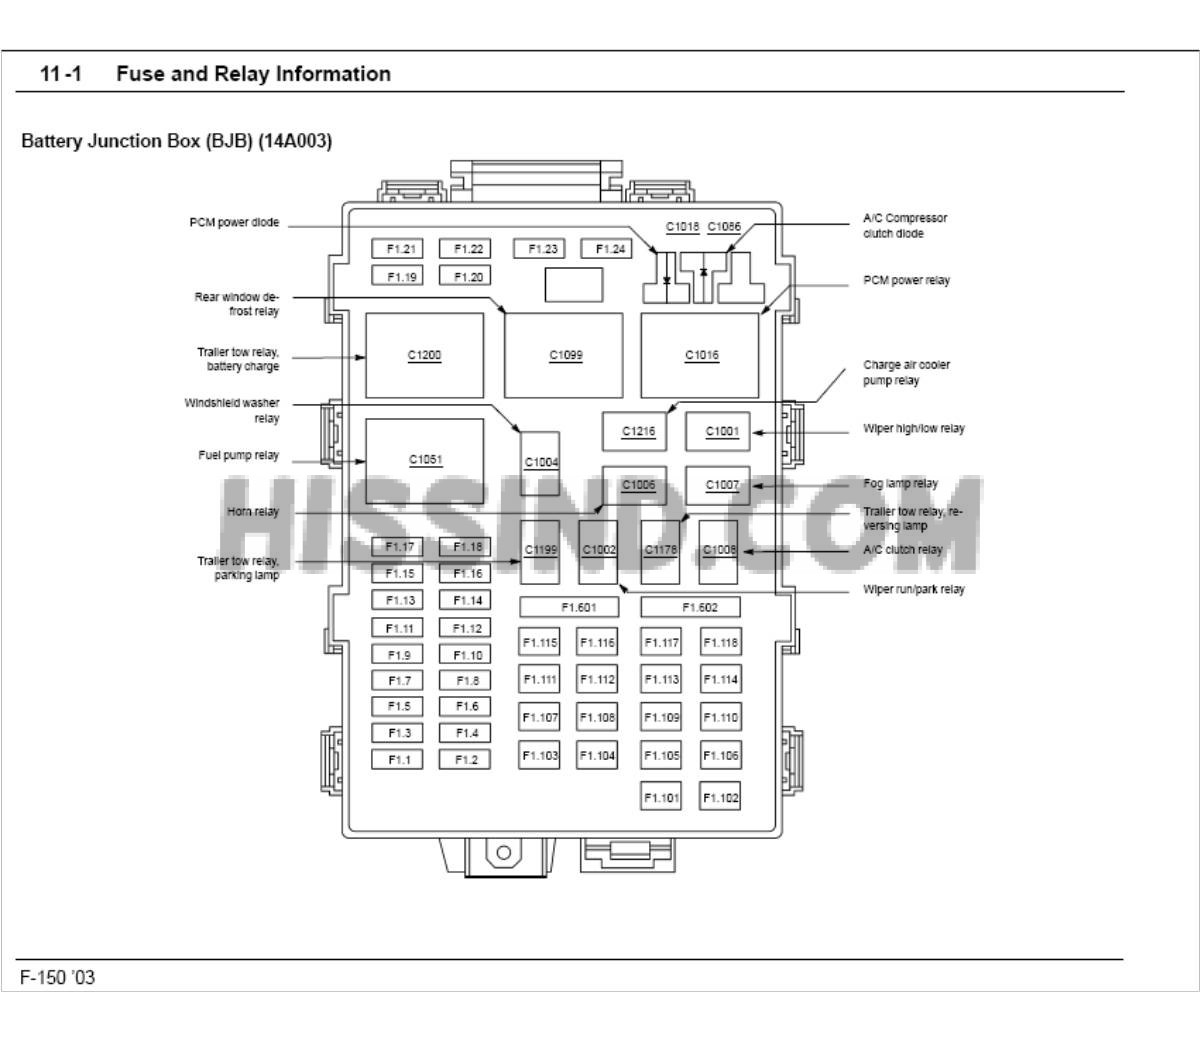 03 F150 Fuse Box Diagram Wiring Diagrams 2001 2000 Ford Engine Bay Rh Hissind Com 2005